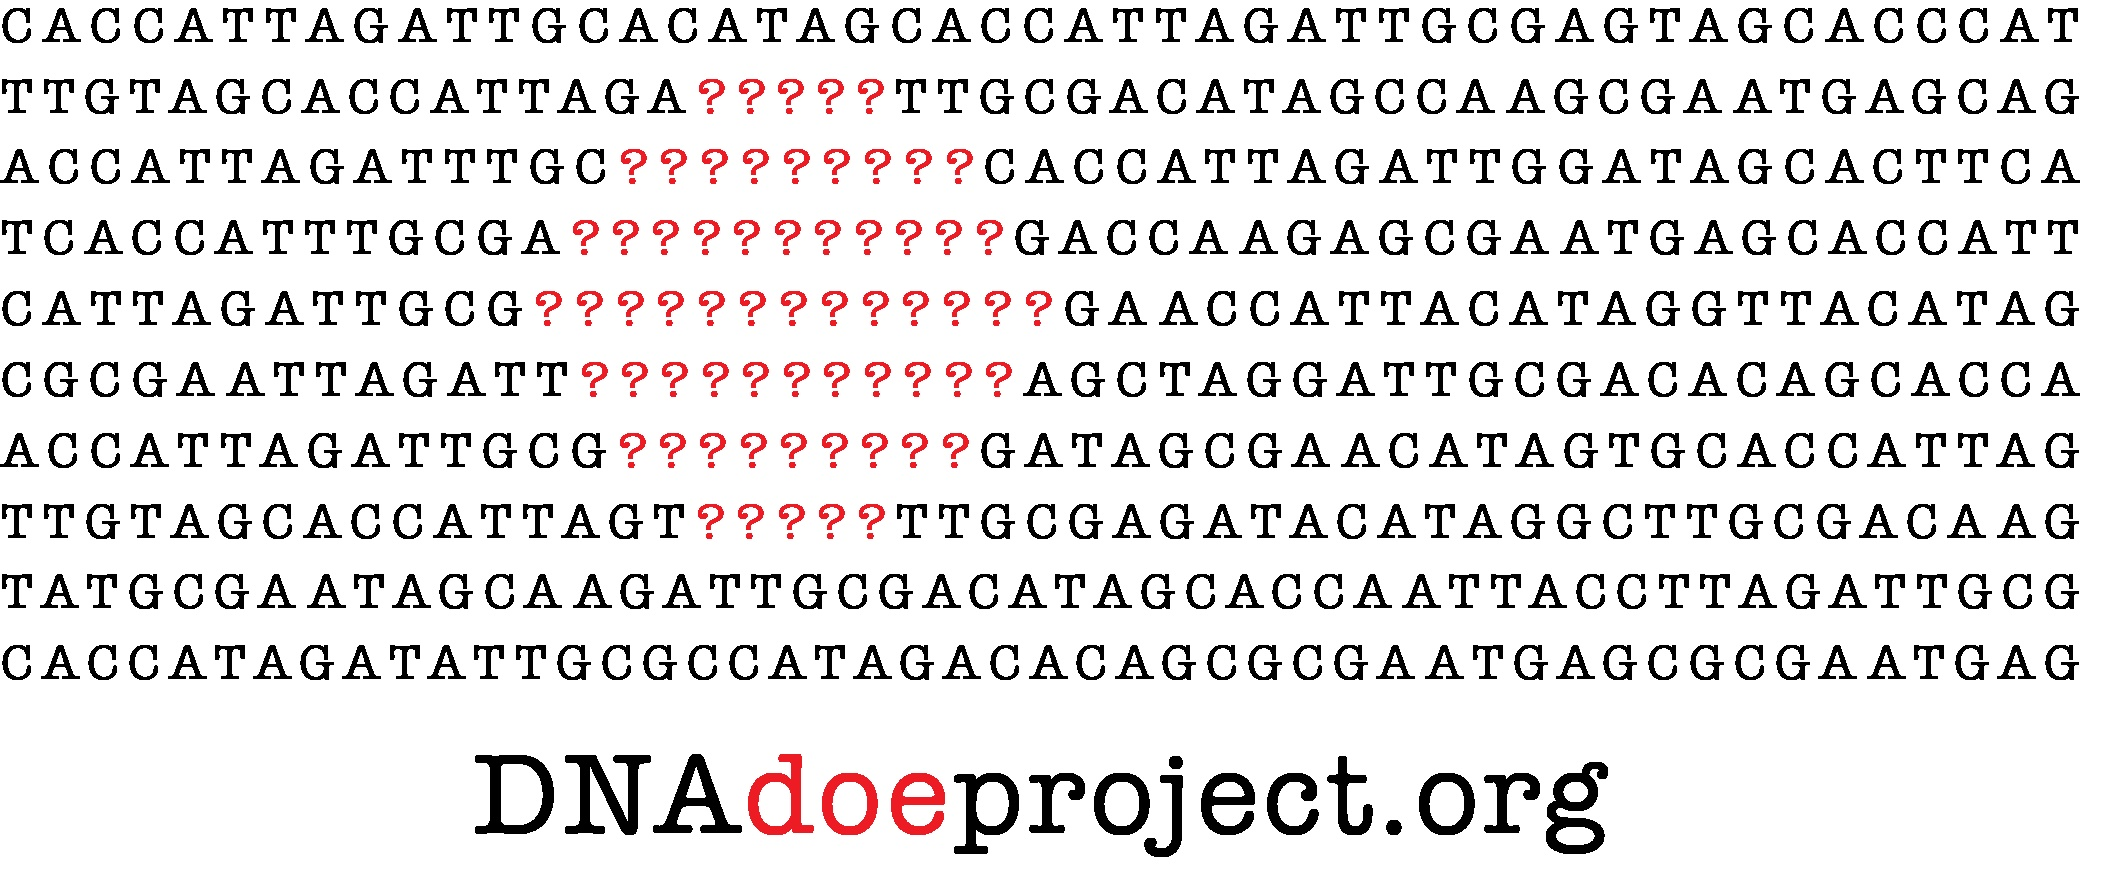 dnadoeproject Cover